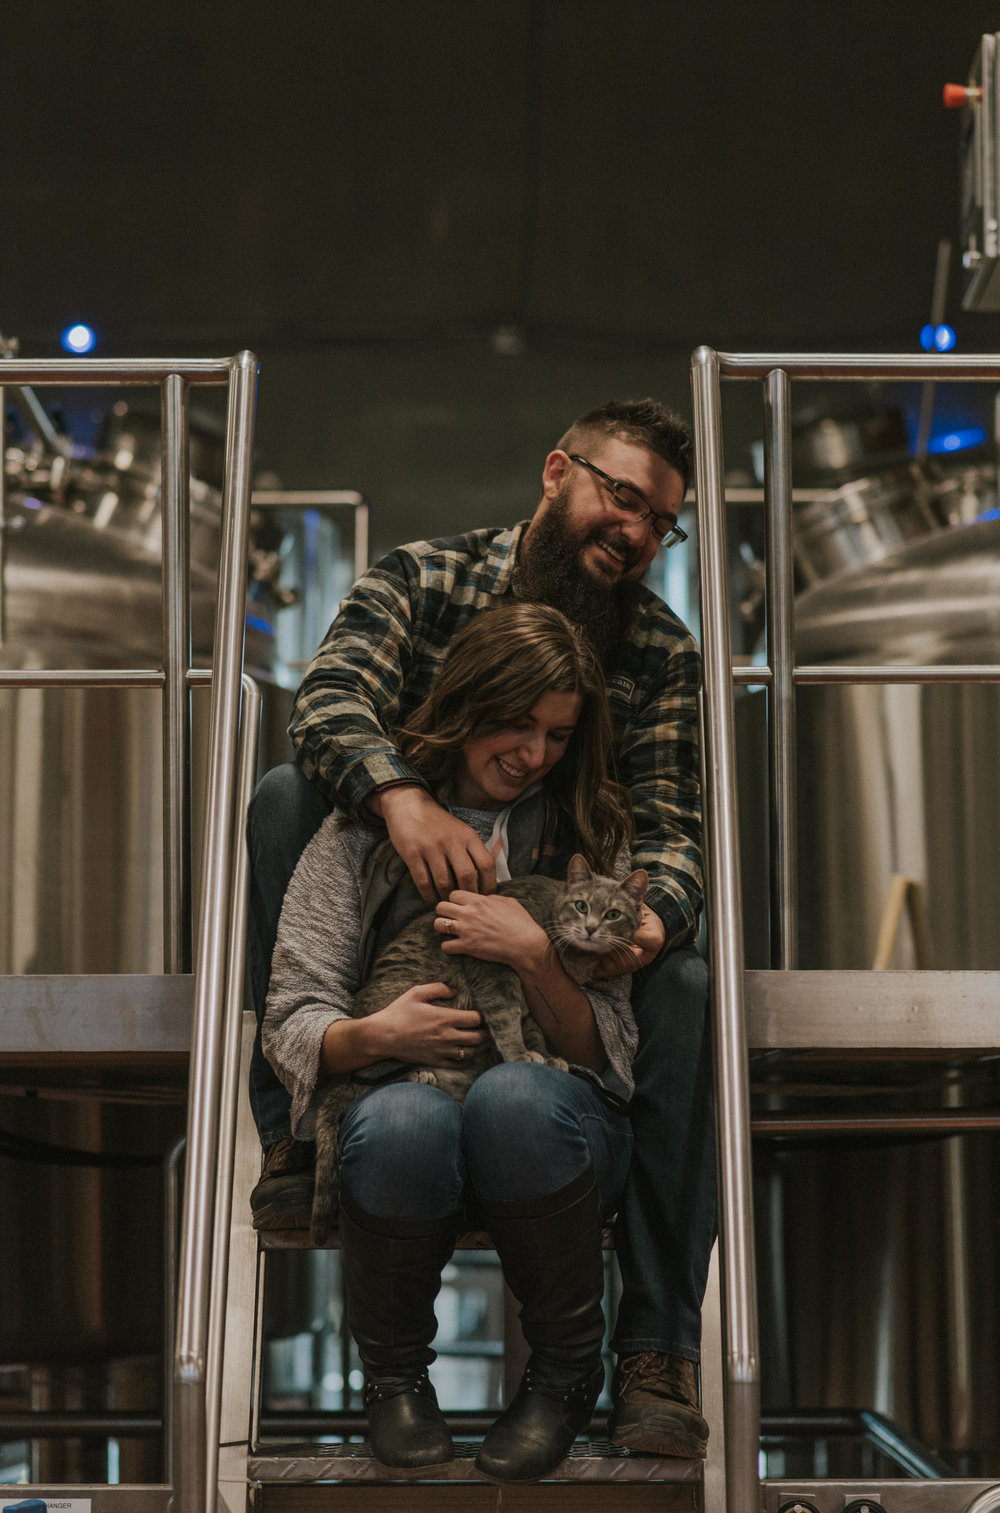 Offbeat adventure engagement session at New Terrain Brewery. Denver, Colorado wedding photographer.